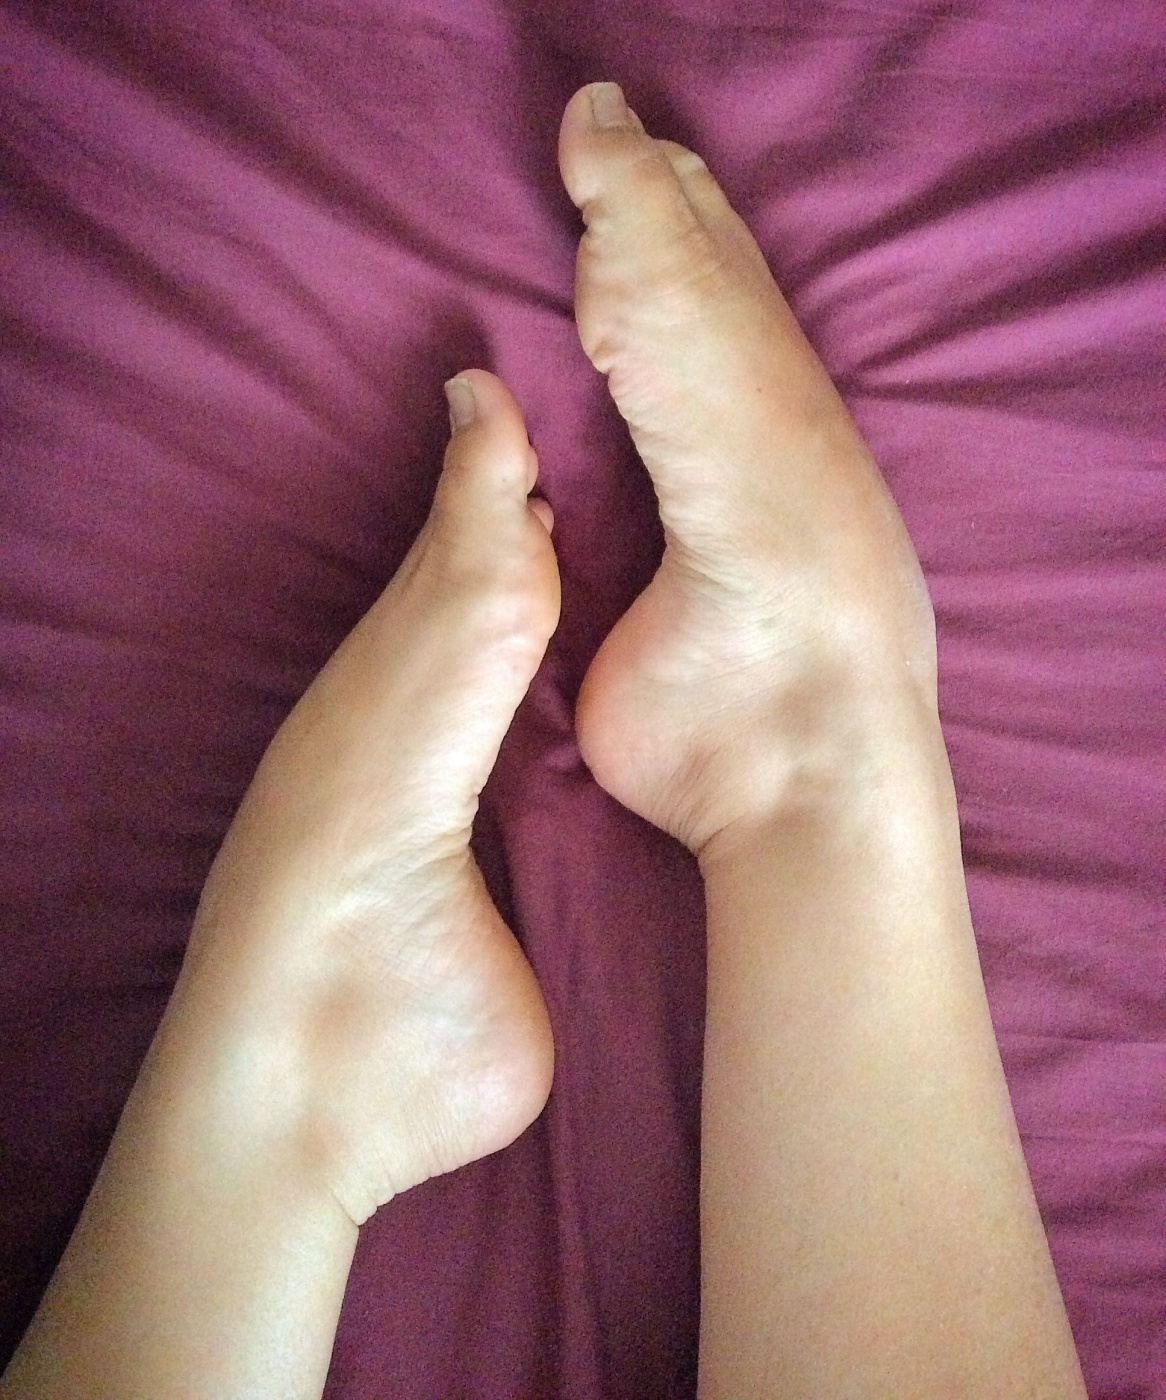 Custom feet photos